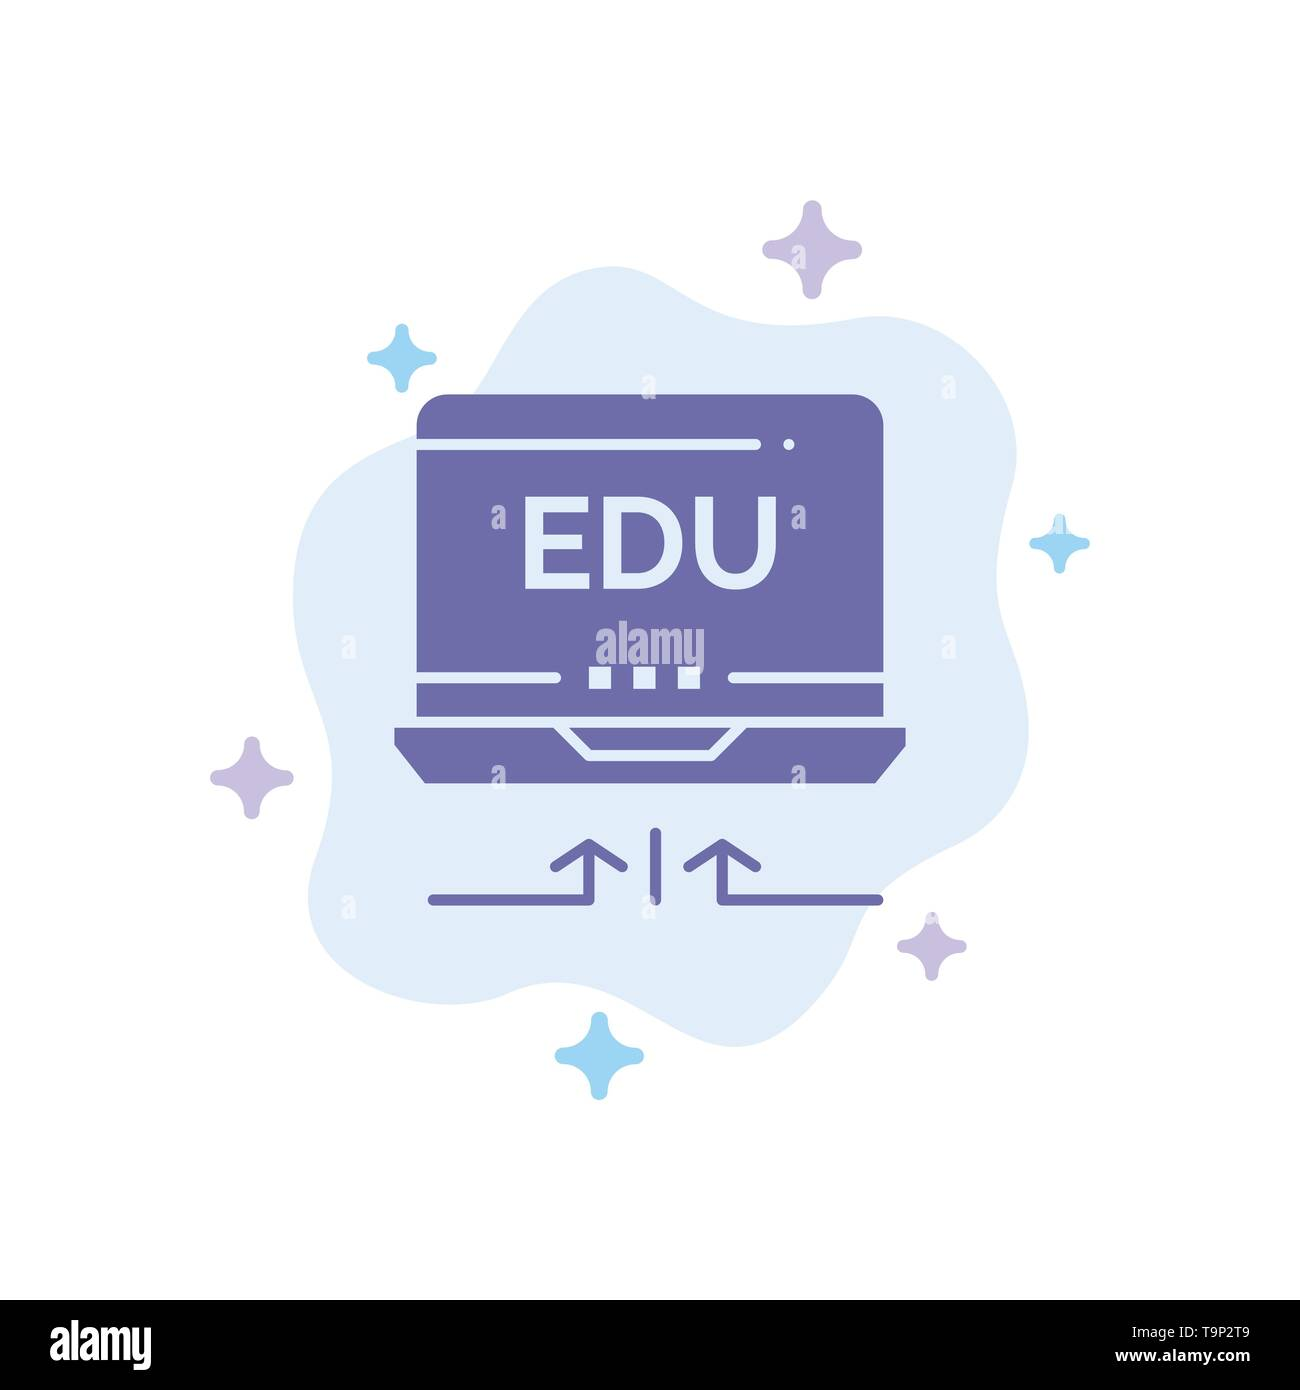 Laptop, Hardware, Arrow, Education Blue Icon on Abstract Cloud Background - Stock Image